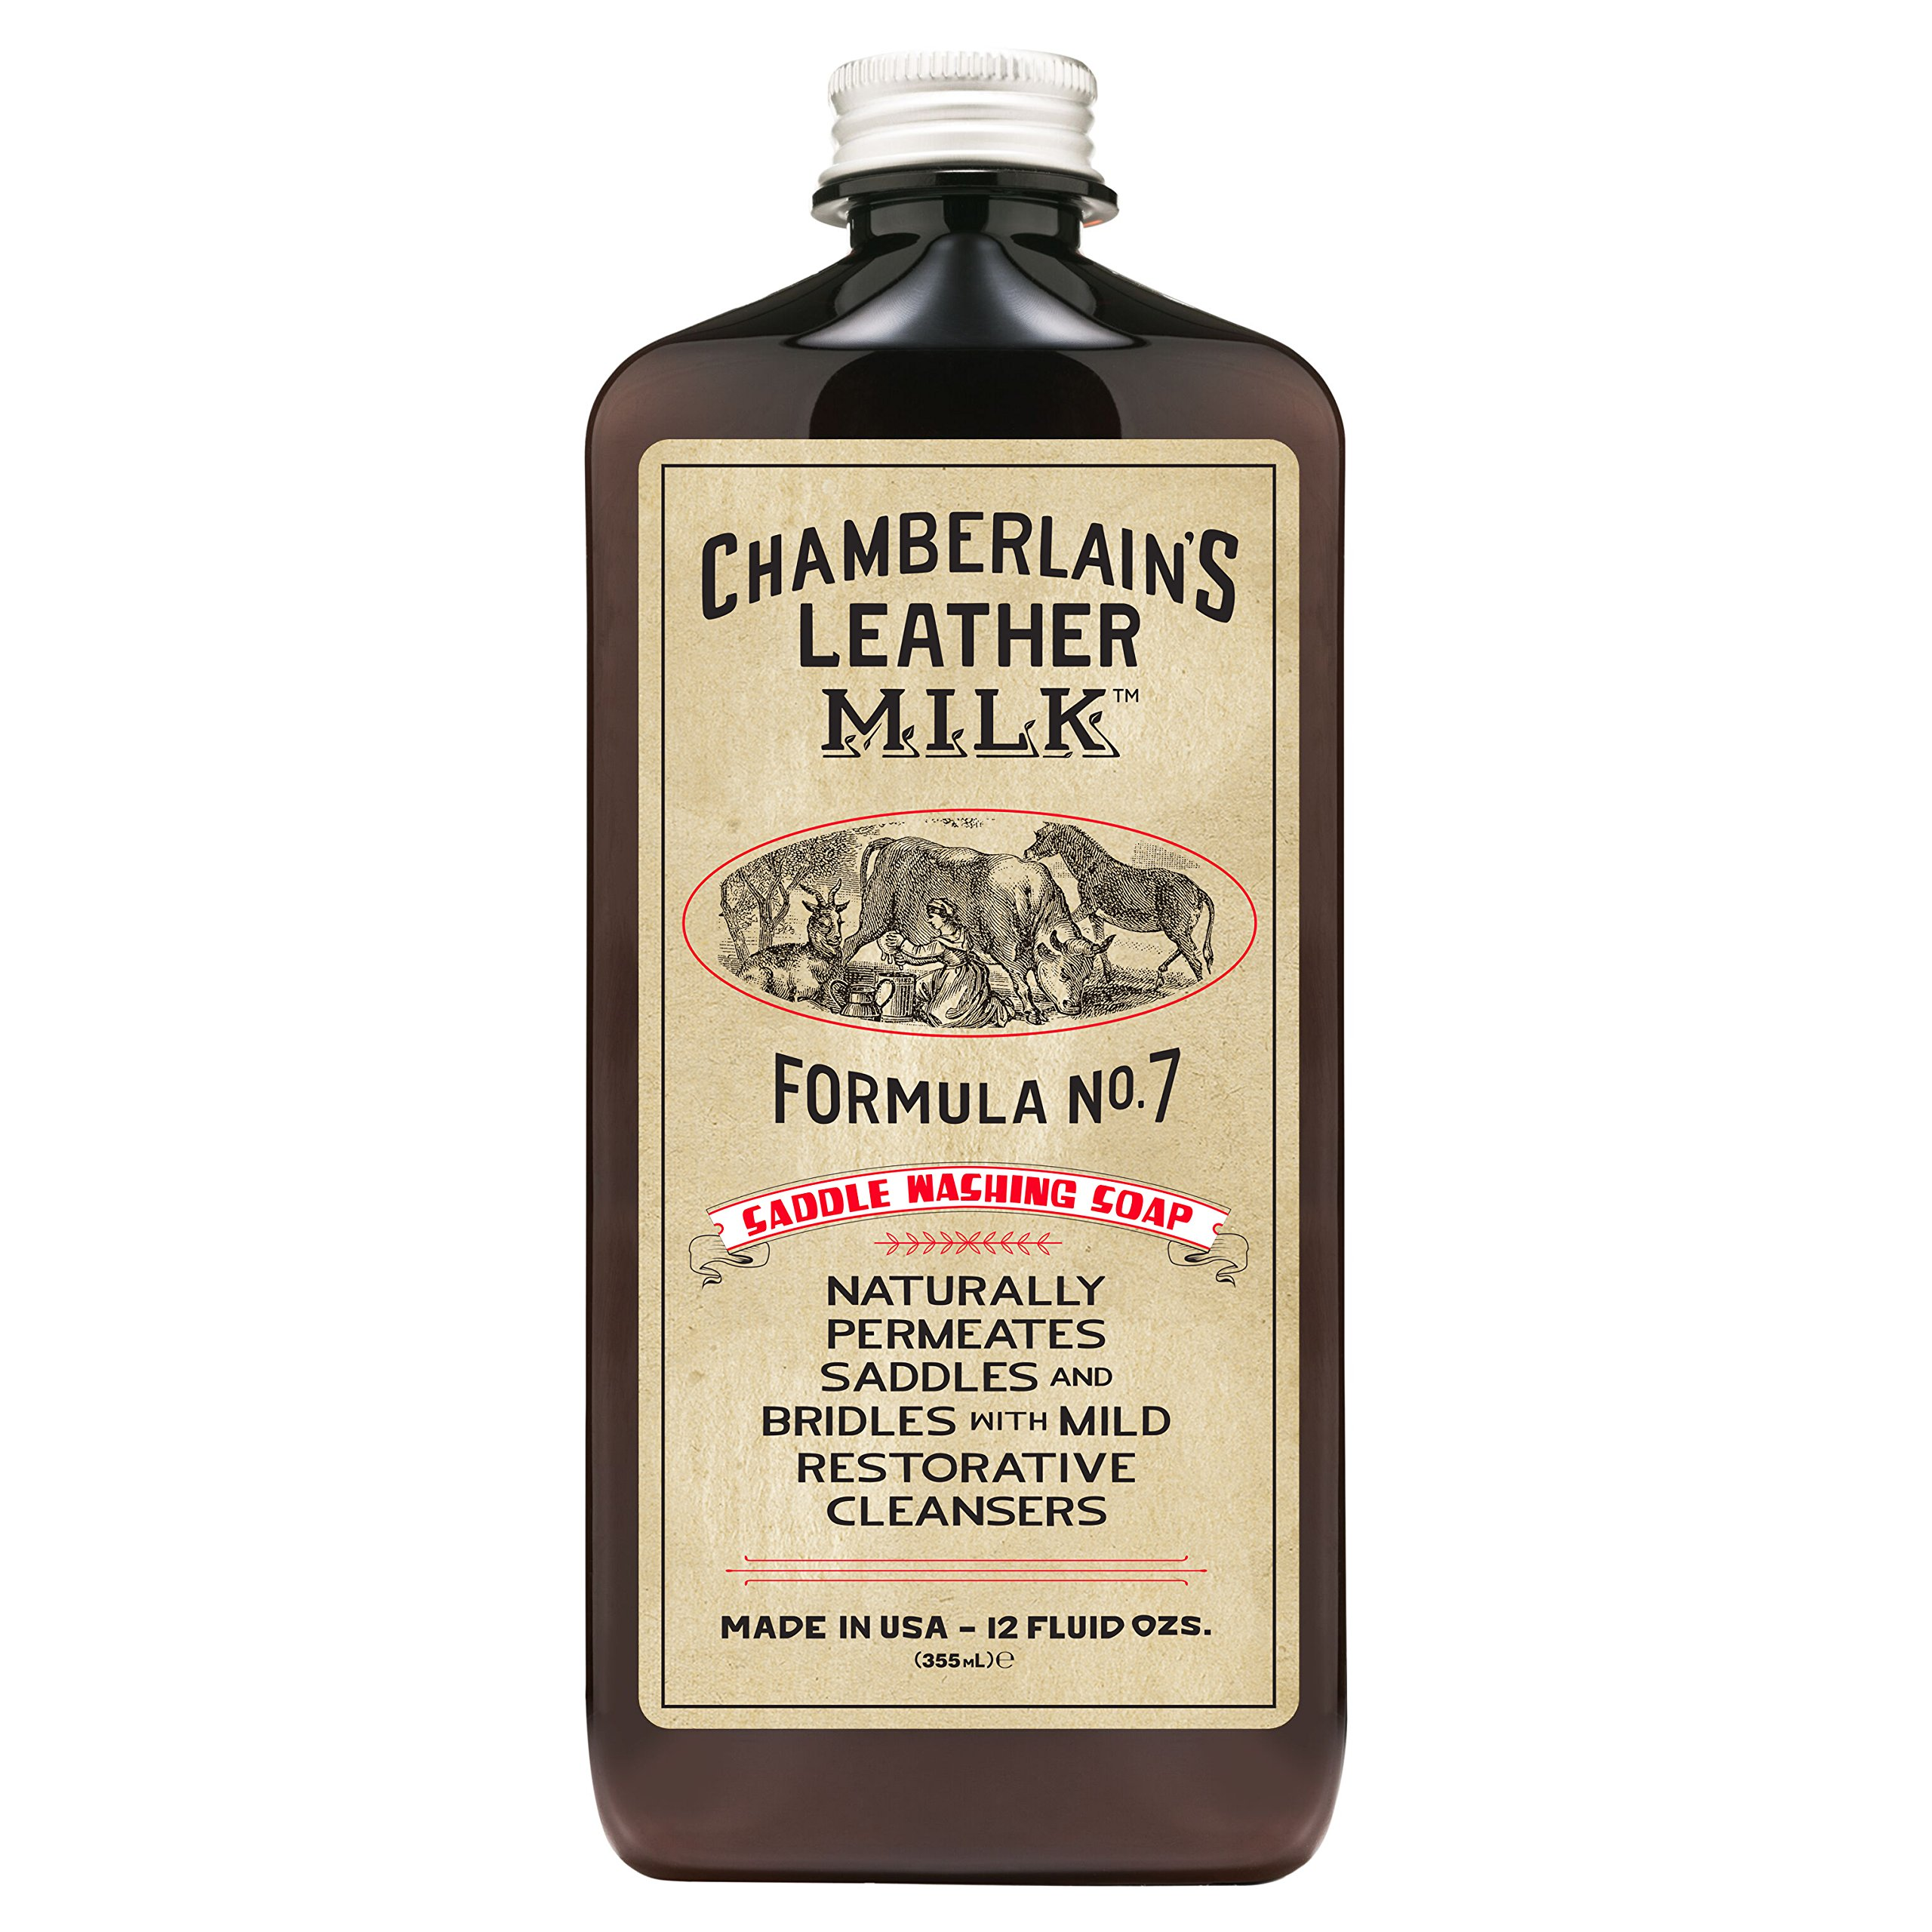 Leather Milk Saddle Washing Soap - No. 7 - All-Natural, Non-Toxic Saddle Soap Deep Cleaner for Western & English Saddles and Tack. Dye and Scent Free. Made in USA. Includes Saddle Scrub Sponge Pad! by Chamberlain's Leather Milk